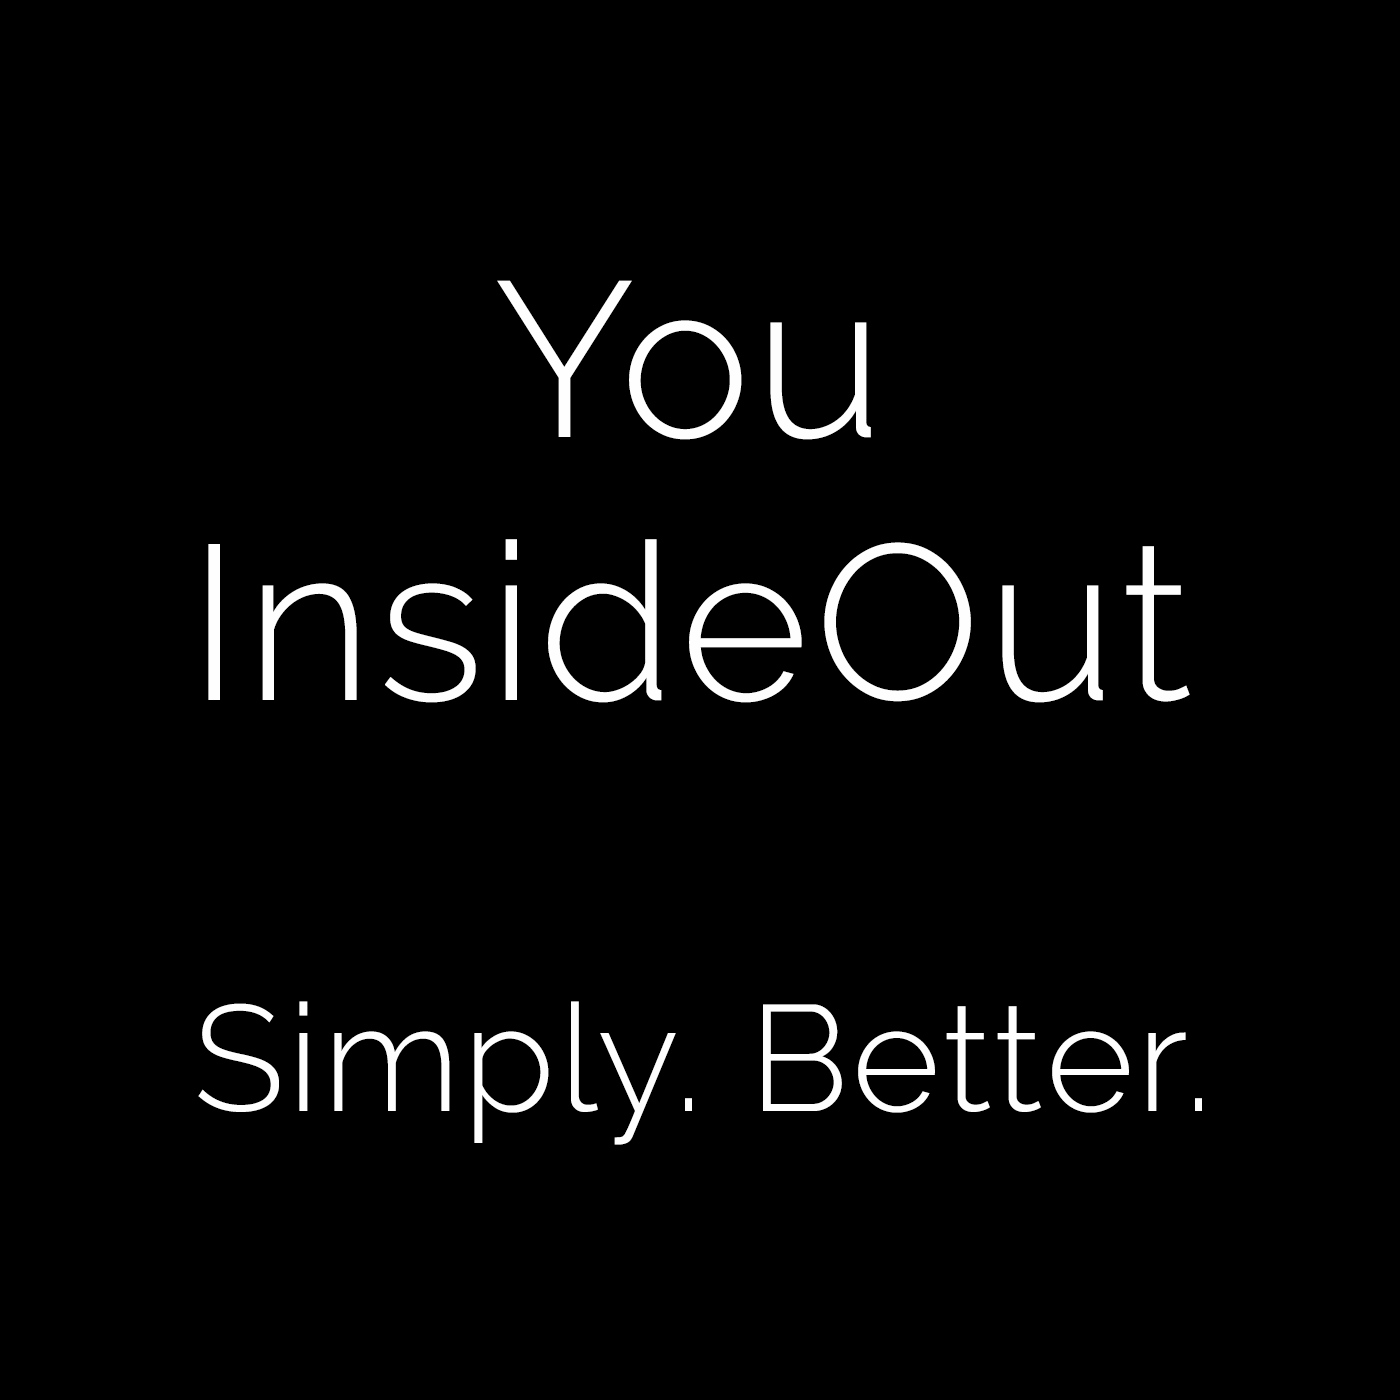 YouInsideOut